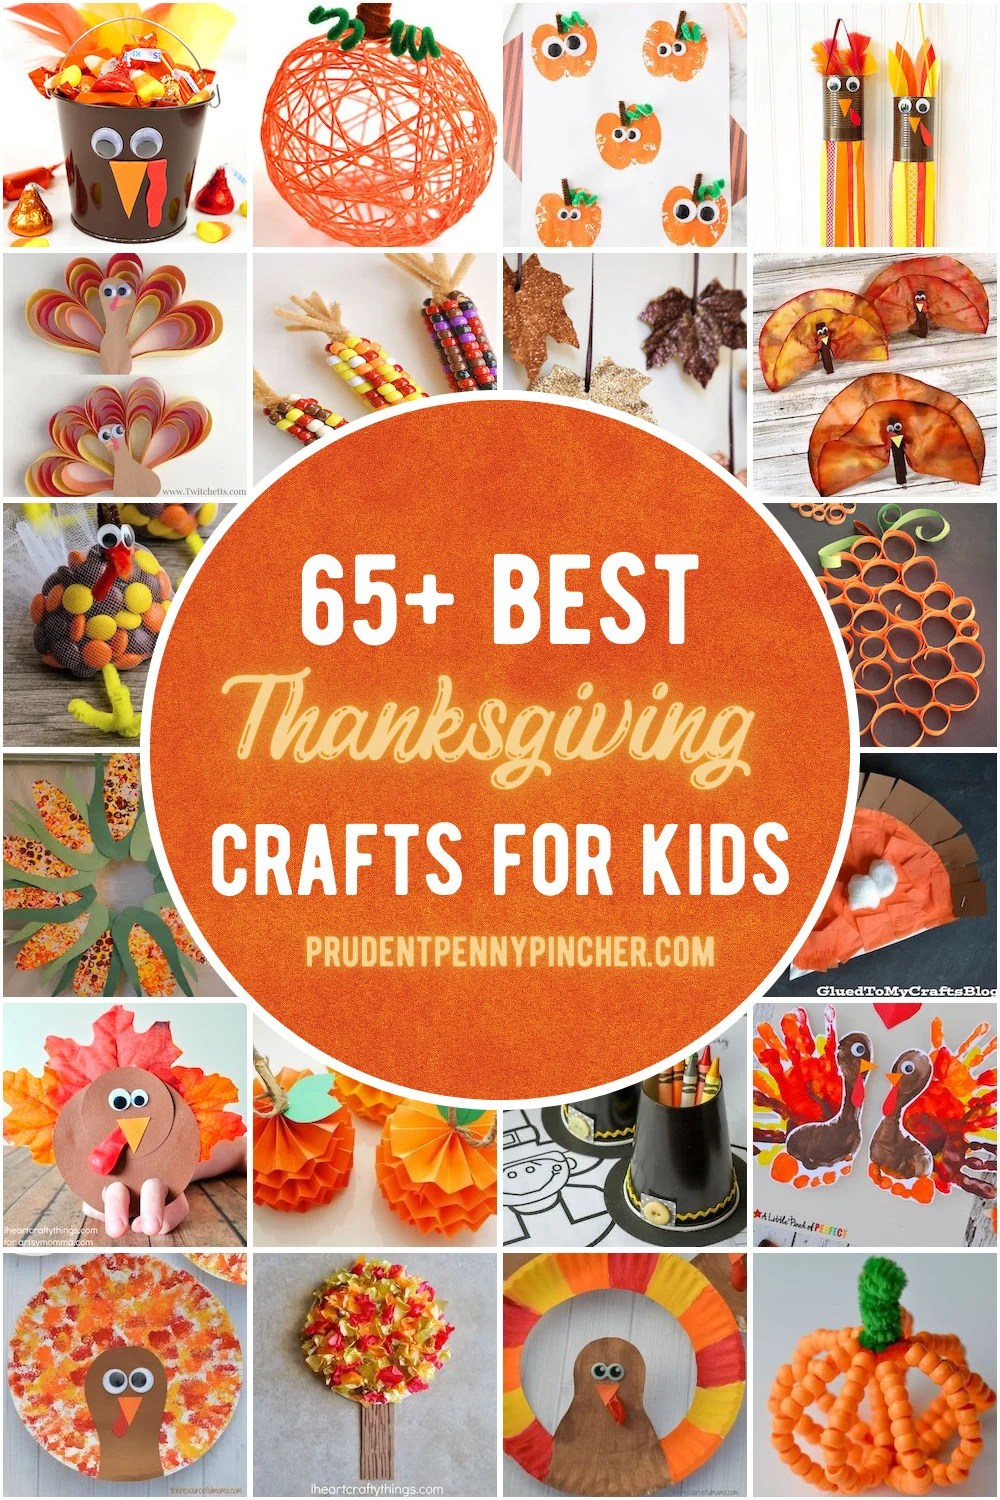 65 Best Thanksgiving Crafts For Kids Prudent Penny Pincher